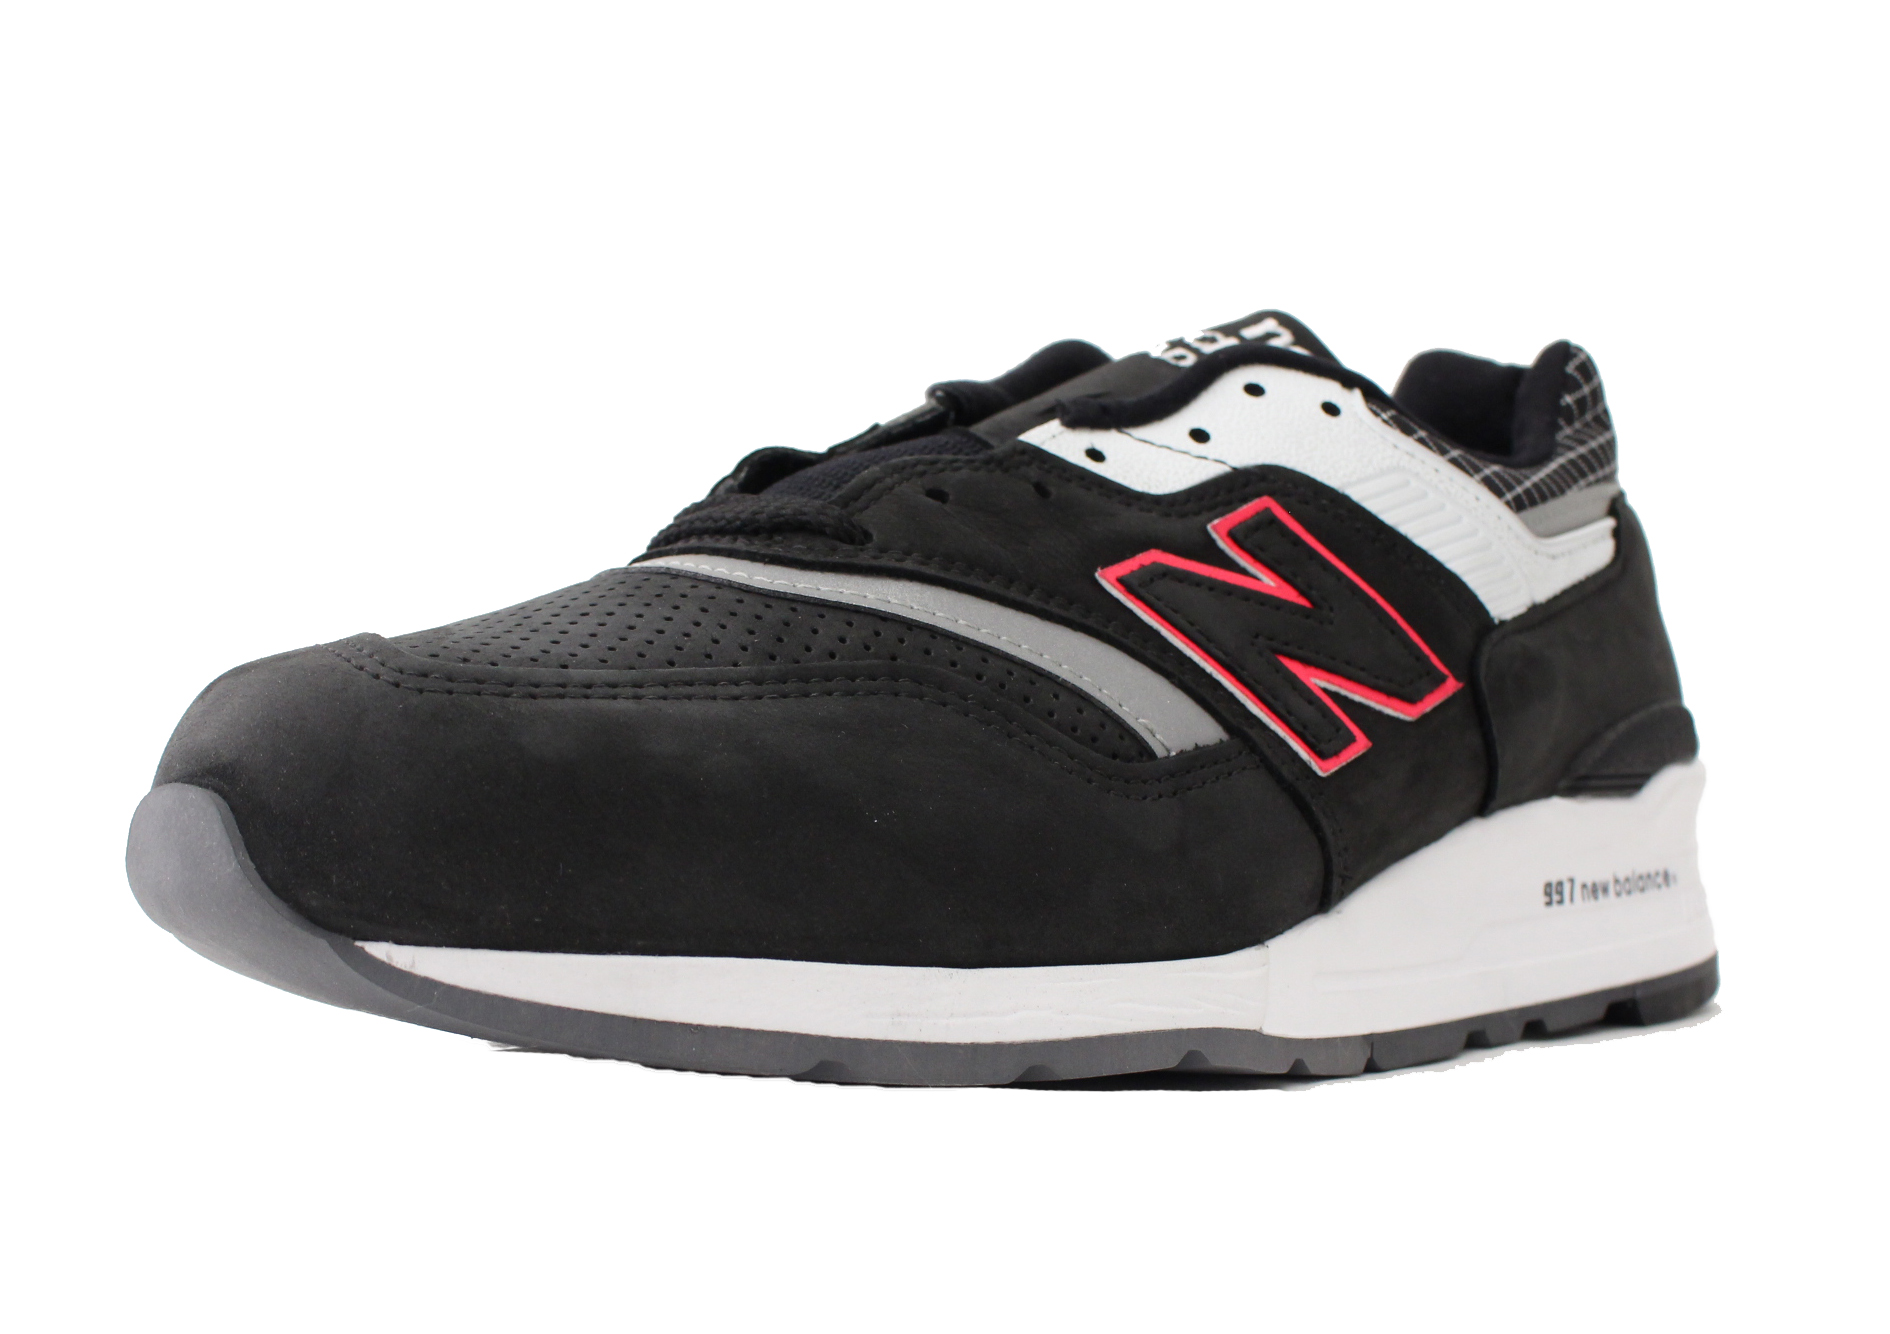 NEW BALANCE 997 SZ 10.5 BLACK GREY PINK MADE IN USA M997CR